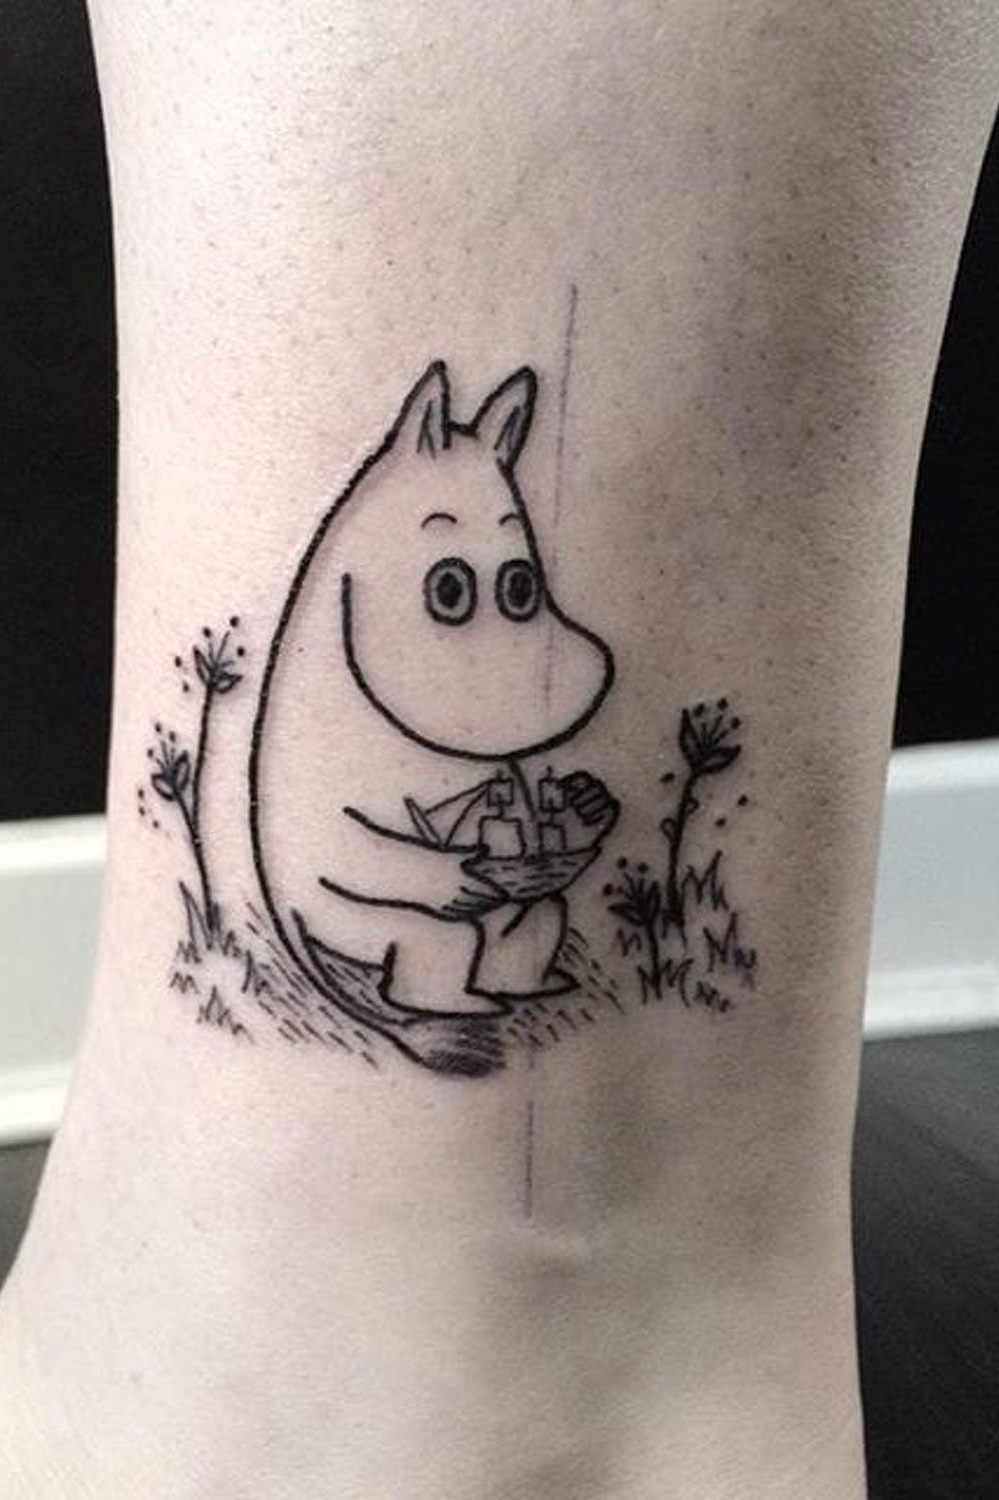 Moomin_tattoo_blackwhite.jpg